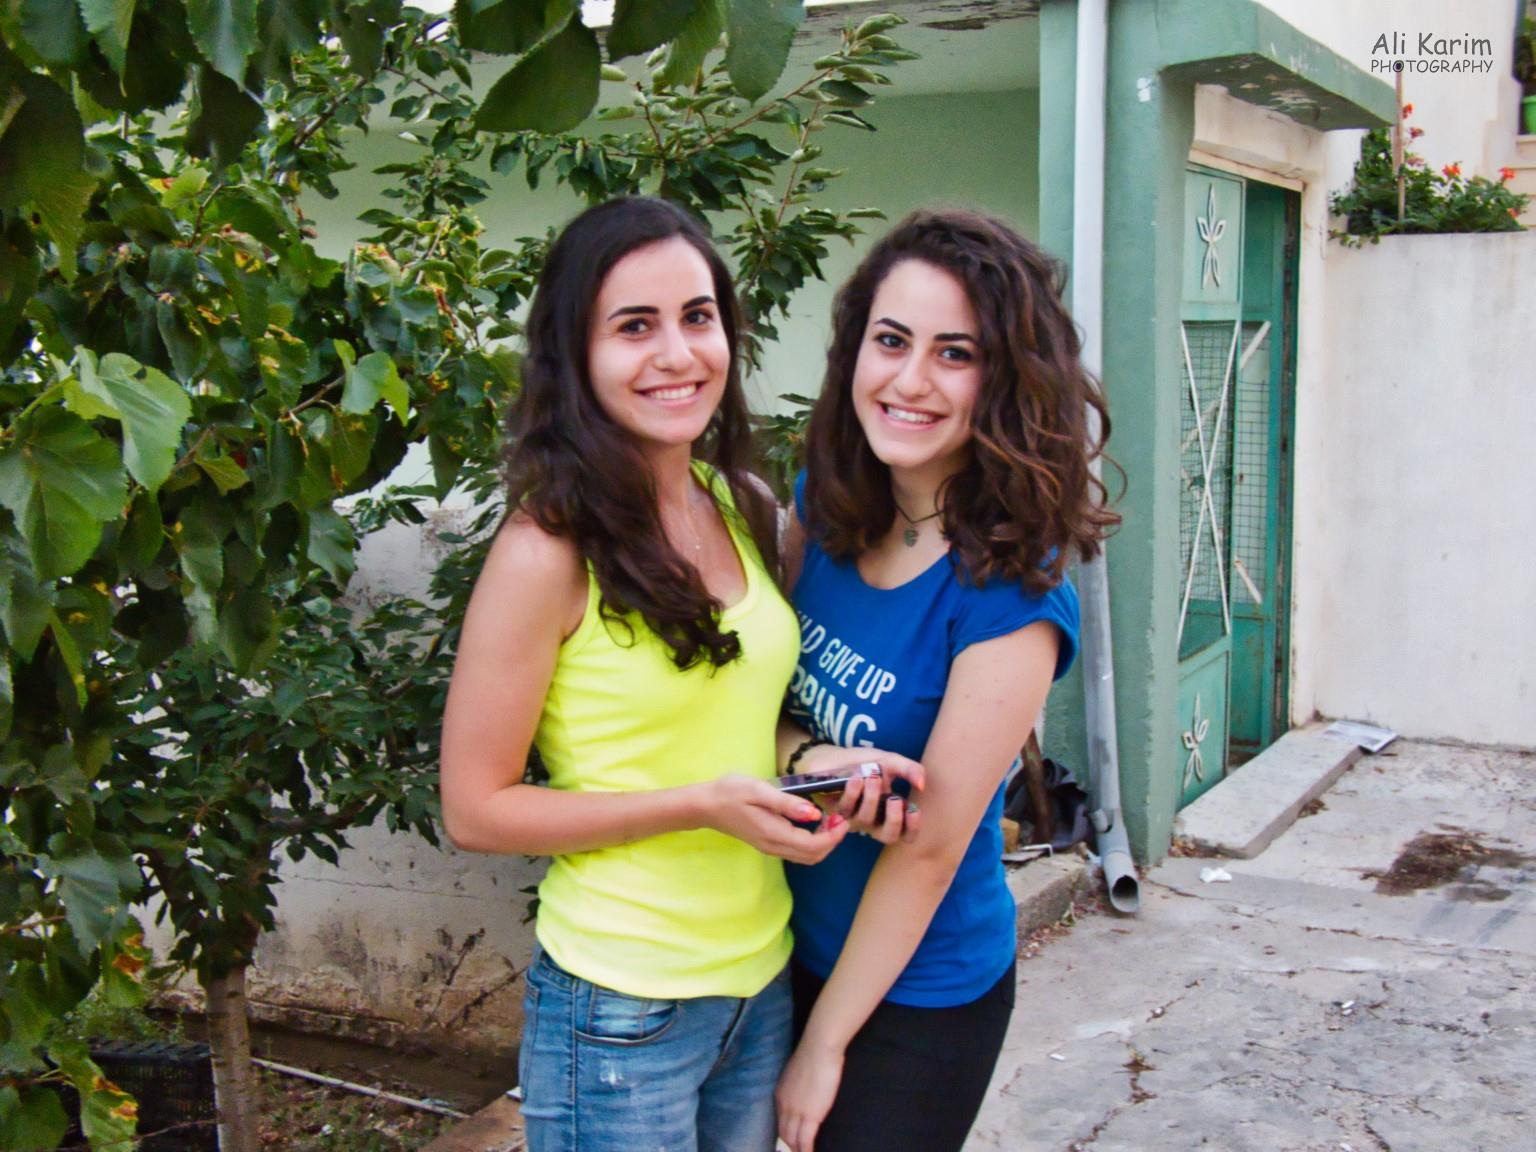 Bekaa Valley Winery, Chouf Mountains & the Druze We met these 2 beautiful sisters, who spoke good English. They were from Beirut, visiting their grandmother and were collecting berries which they shared with us. But they did not have much understanding of the Druze faith, when questioned.